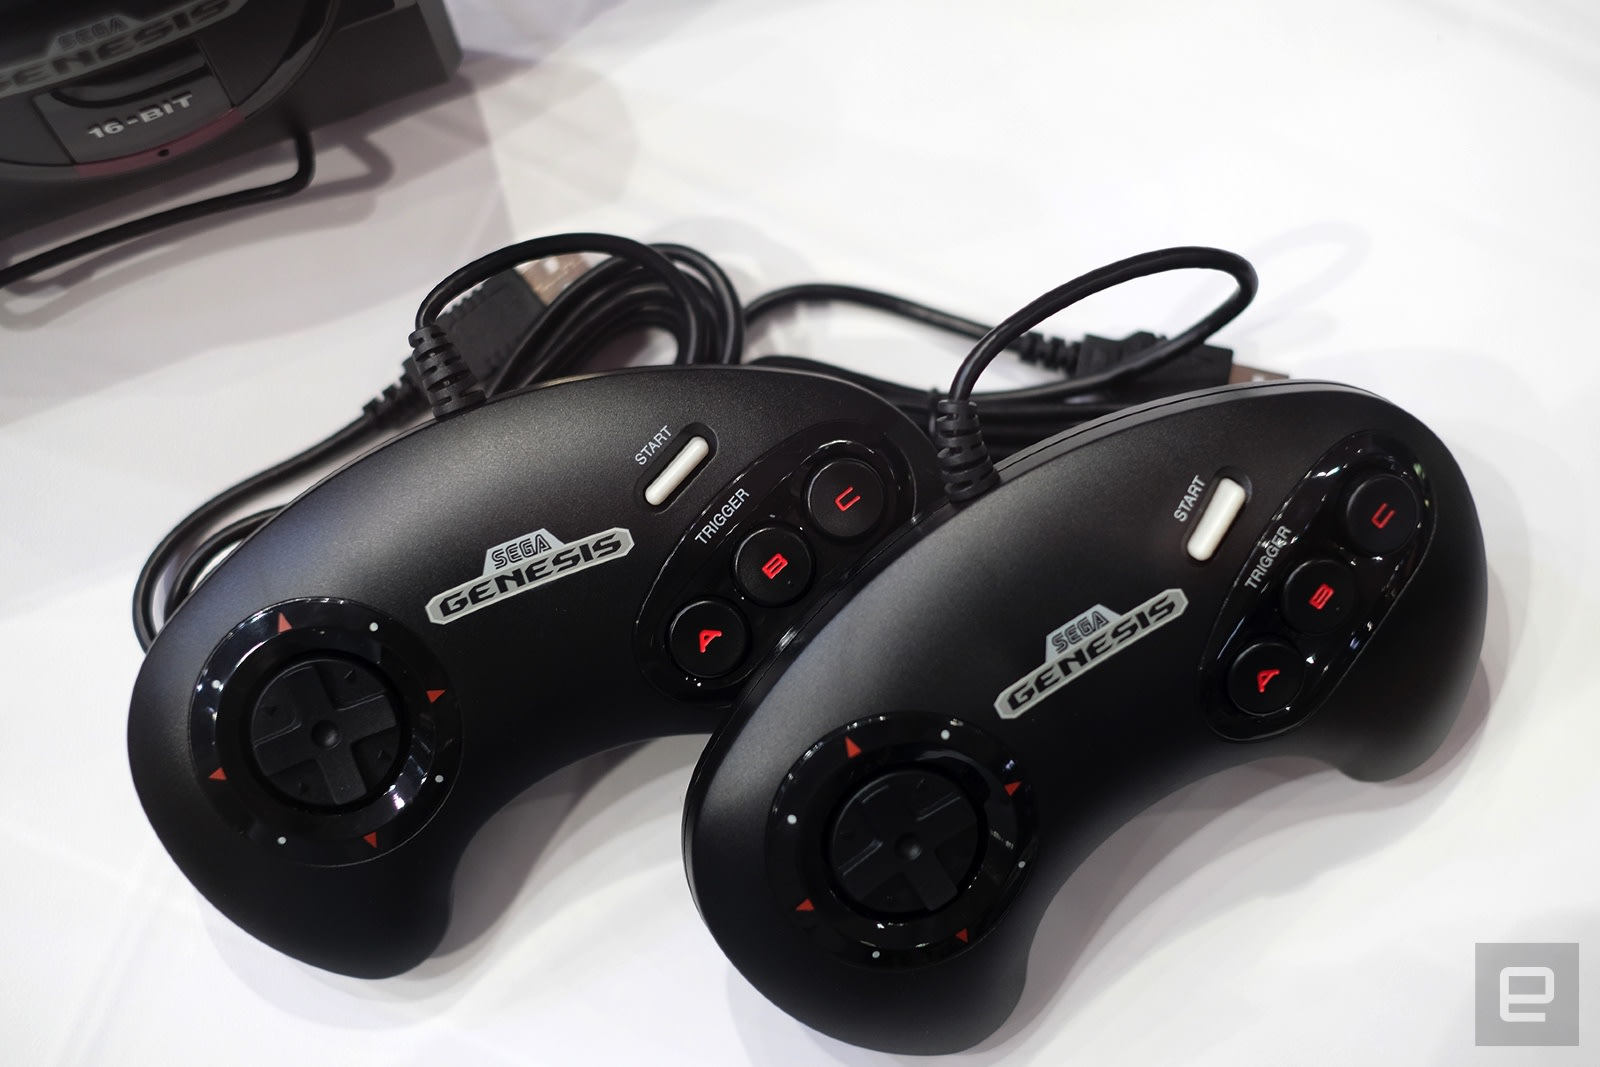 photo of Sega Genesis Mini hands-on: The controller is faithfully clunky image